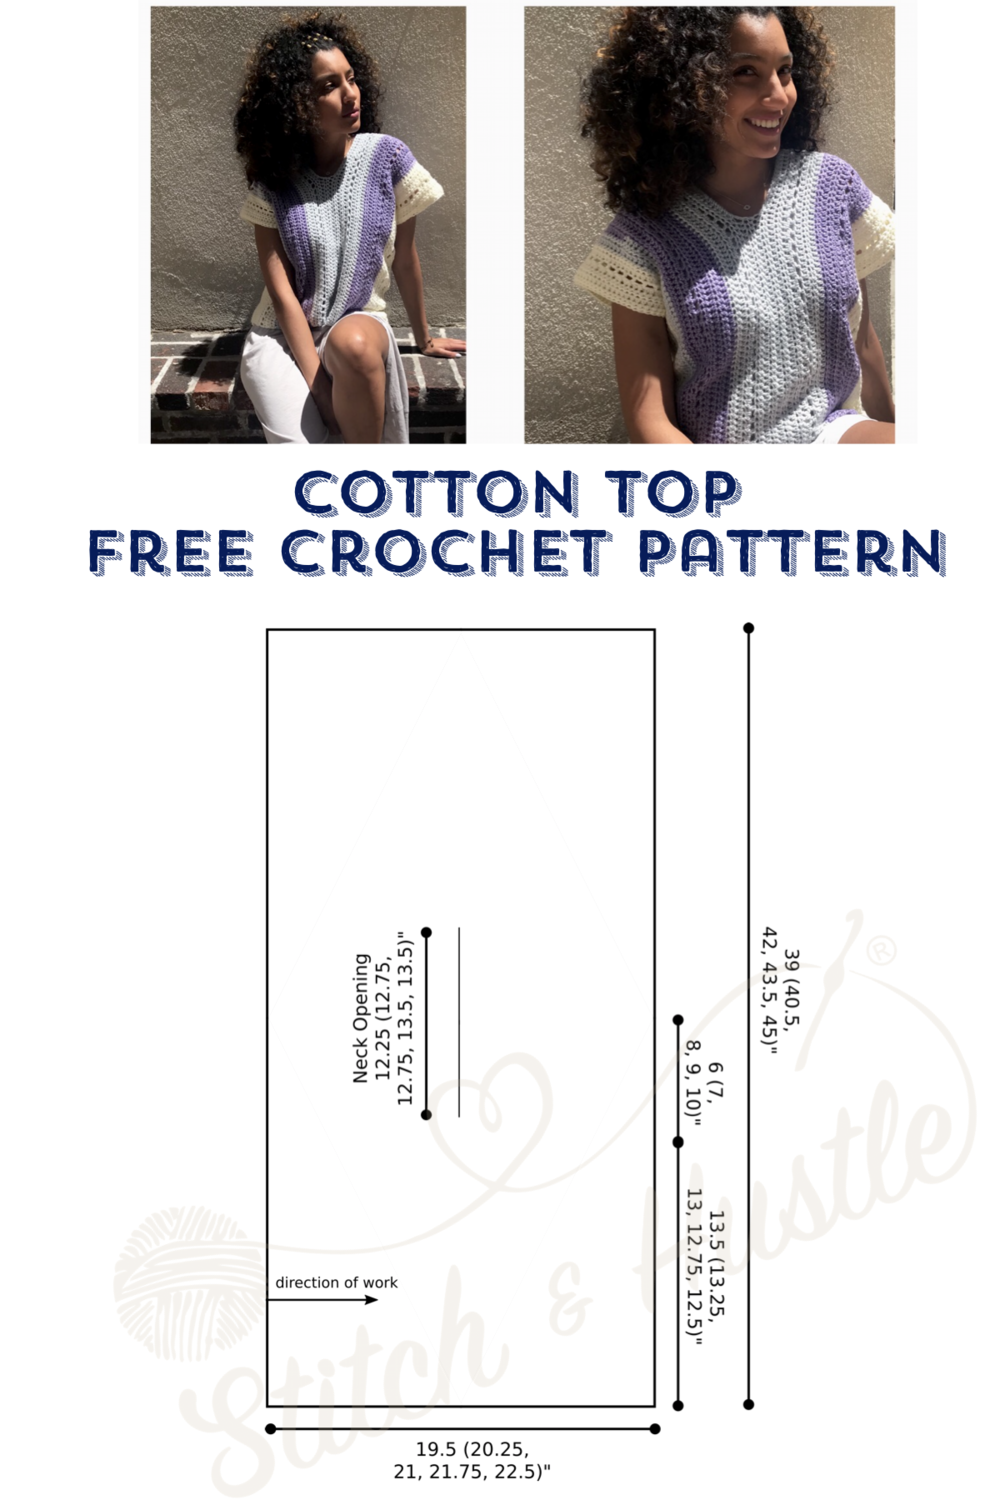 Riviera-crochet-top-free-pattern-stitch-and-hustle-schema.jpeg